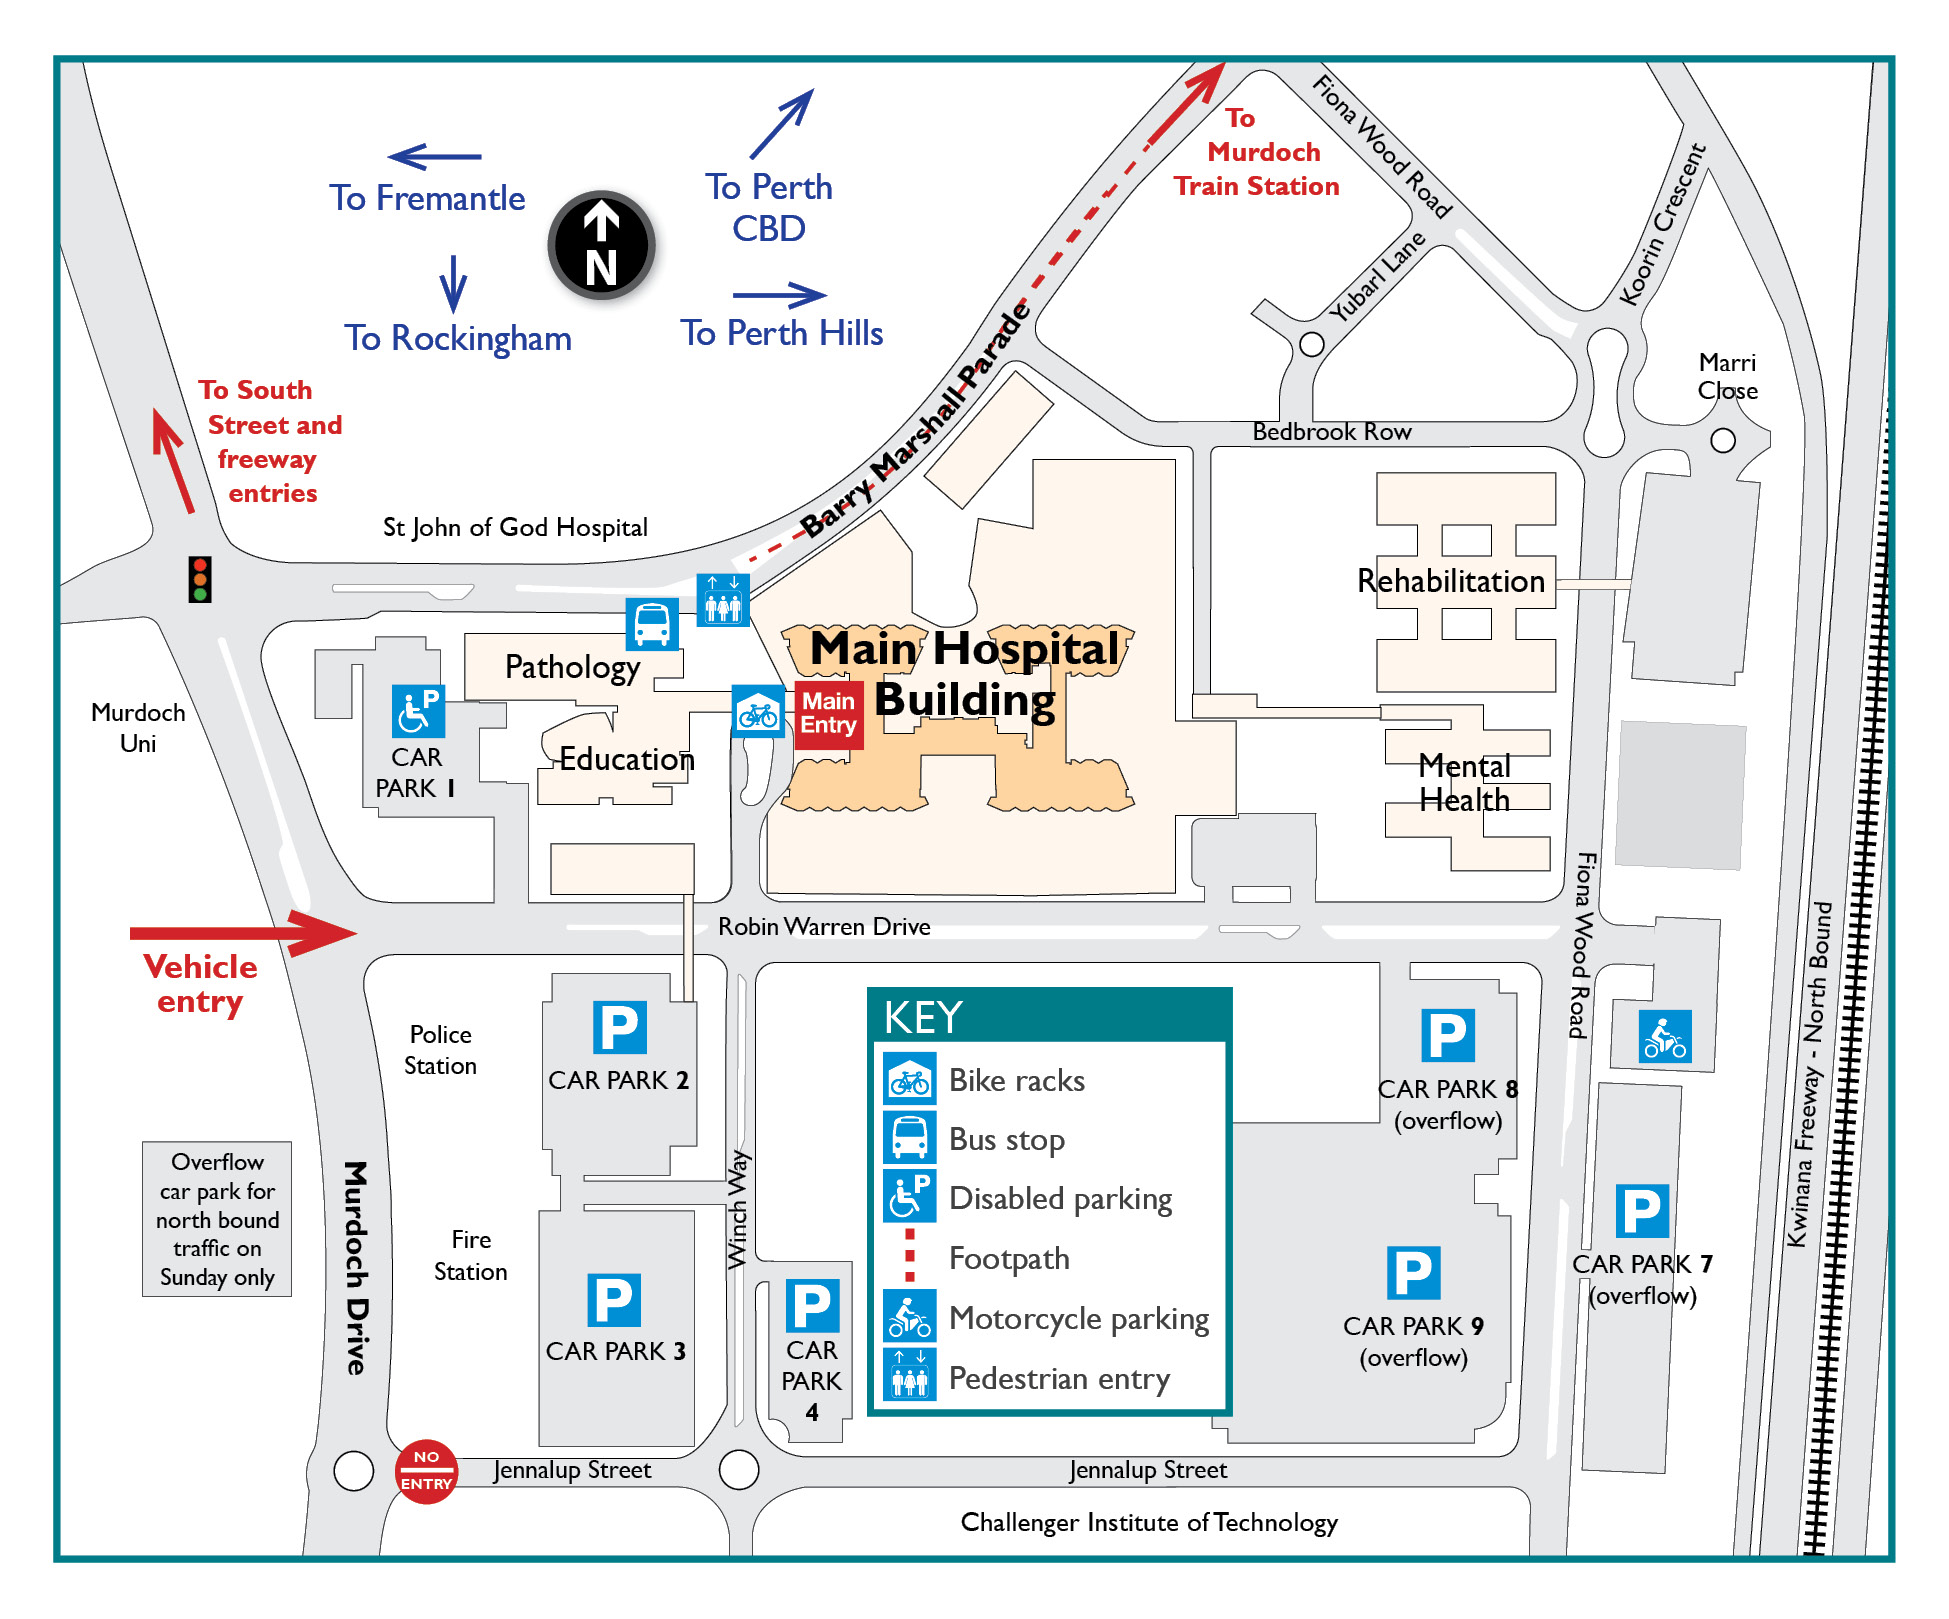 Fremantle Hospital Map Fremantle Hospital Map | Color 2018